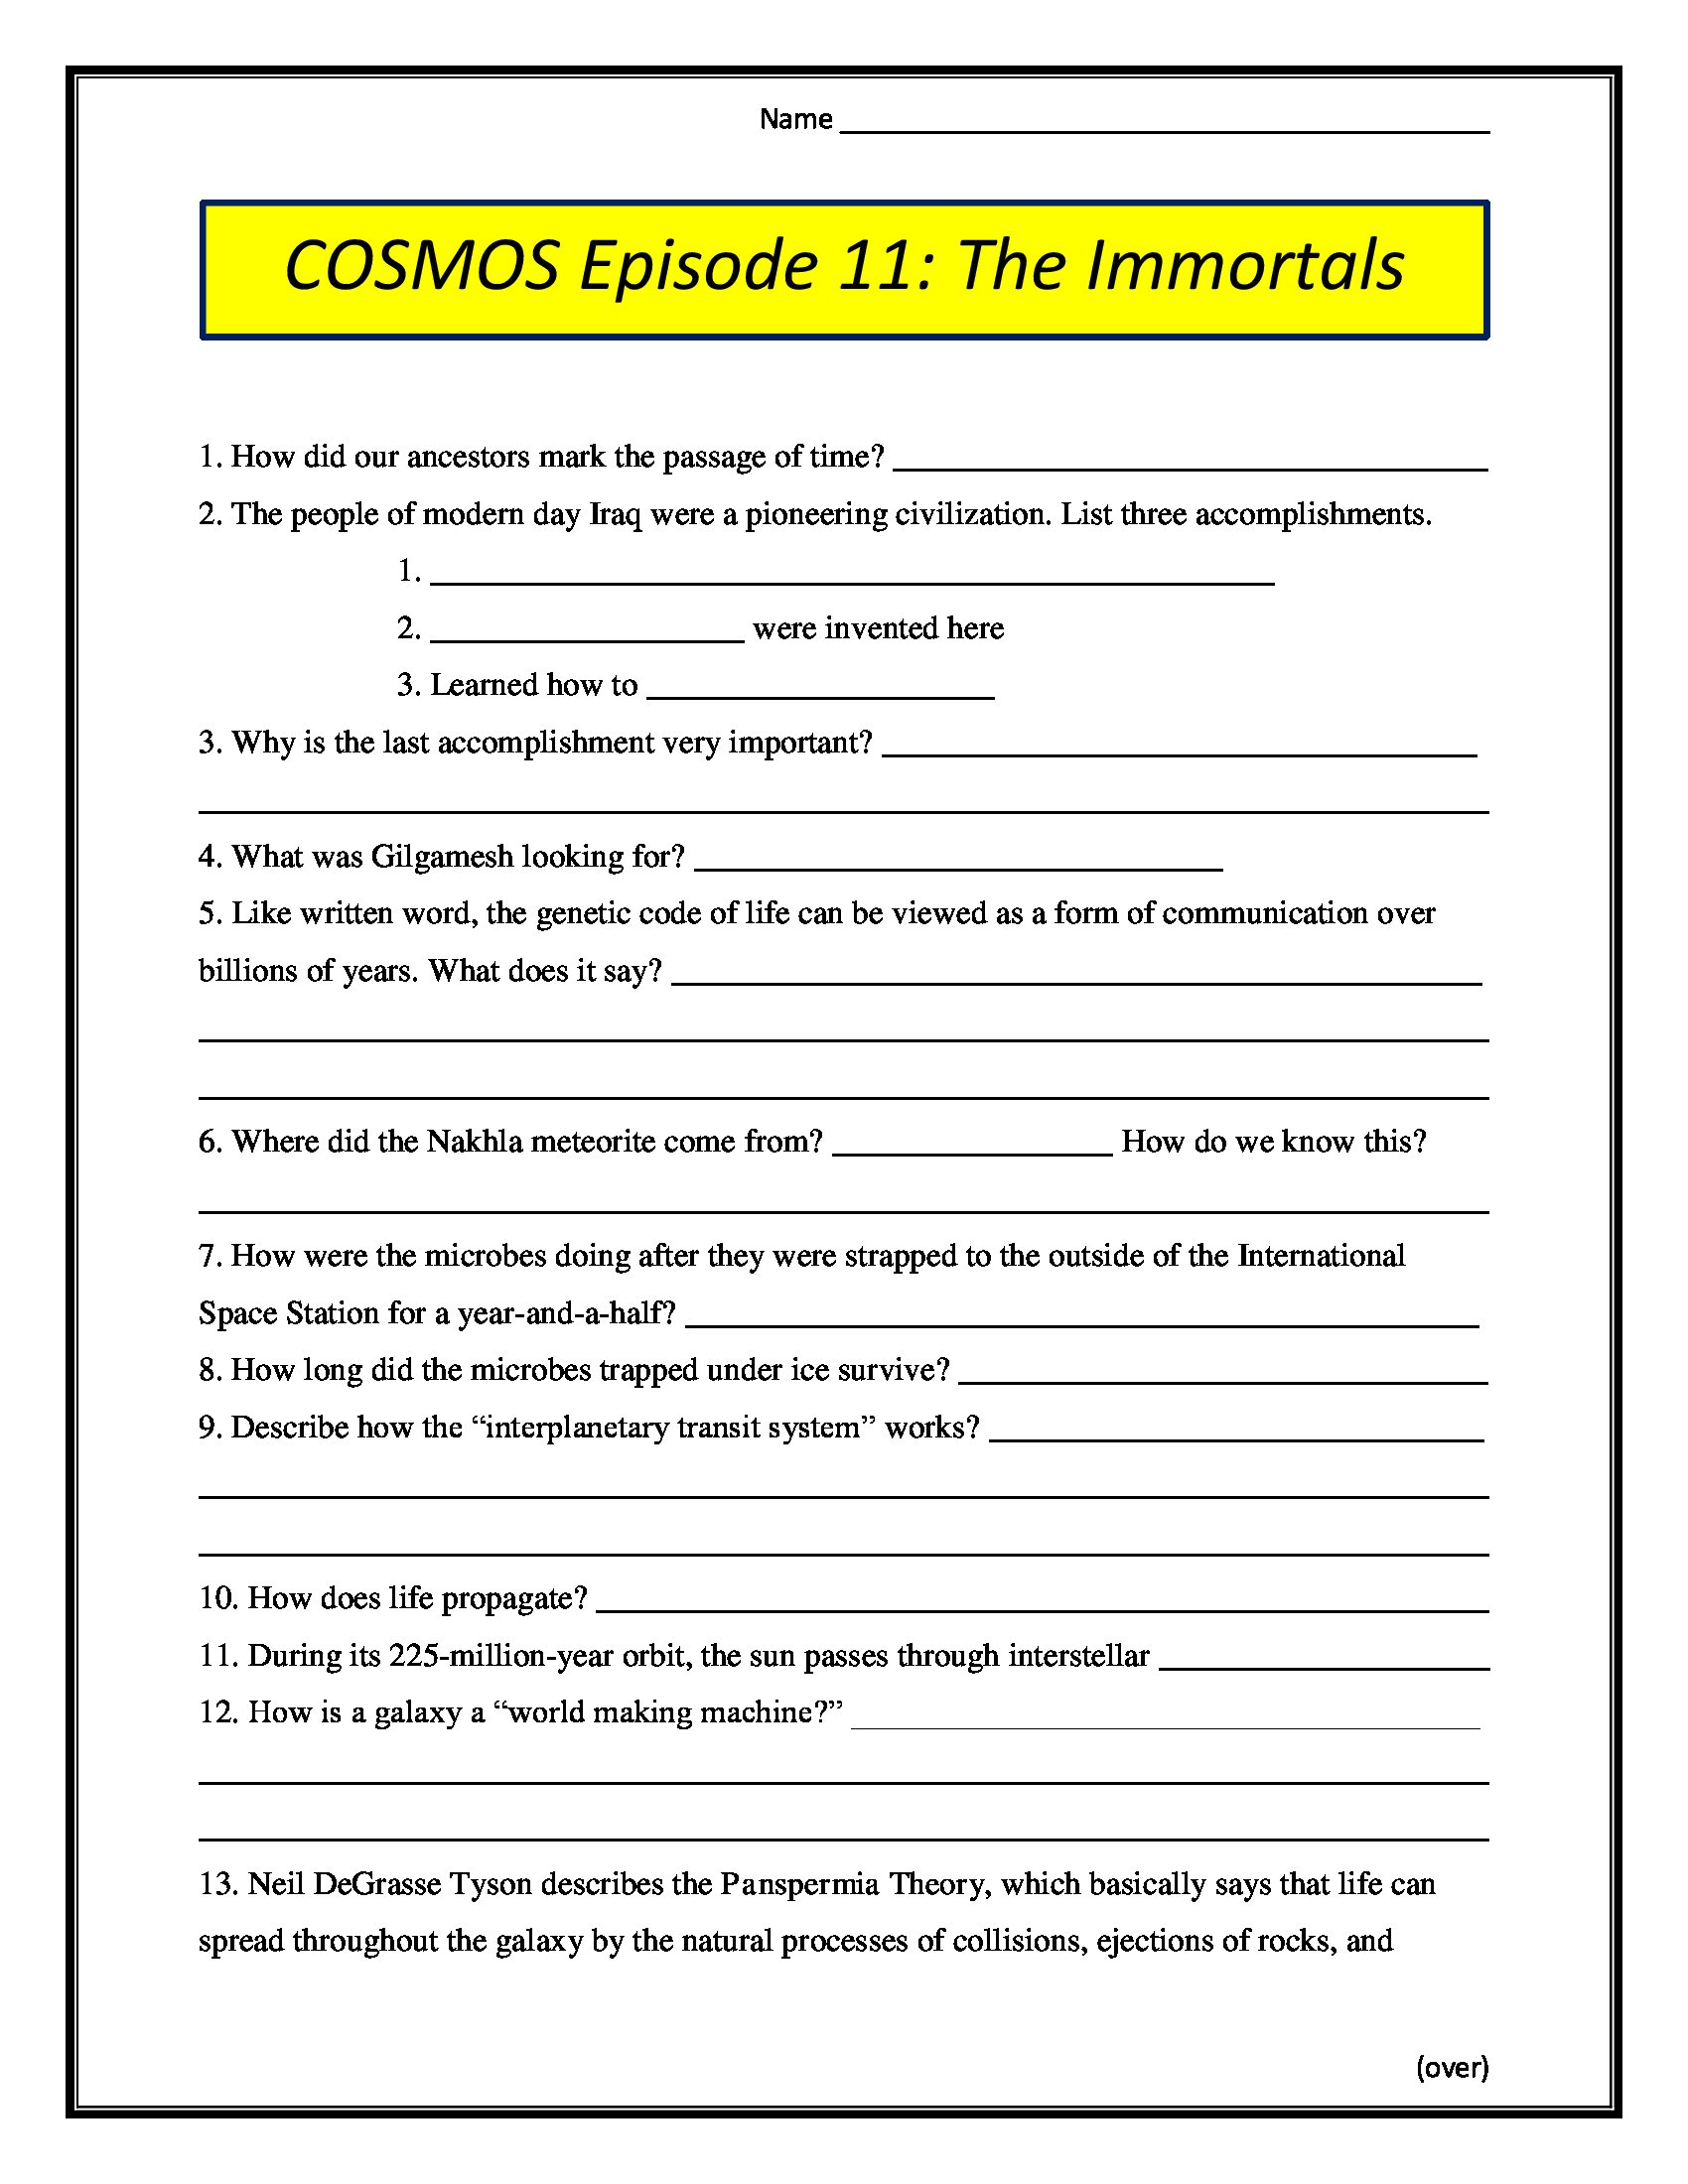 Cosmos Episode 12 Worksheet Answers